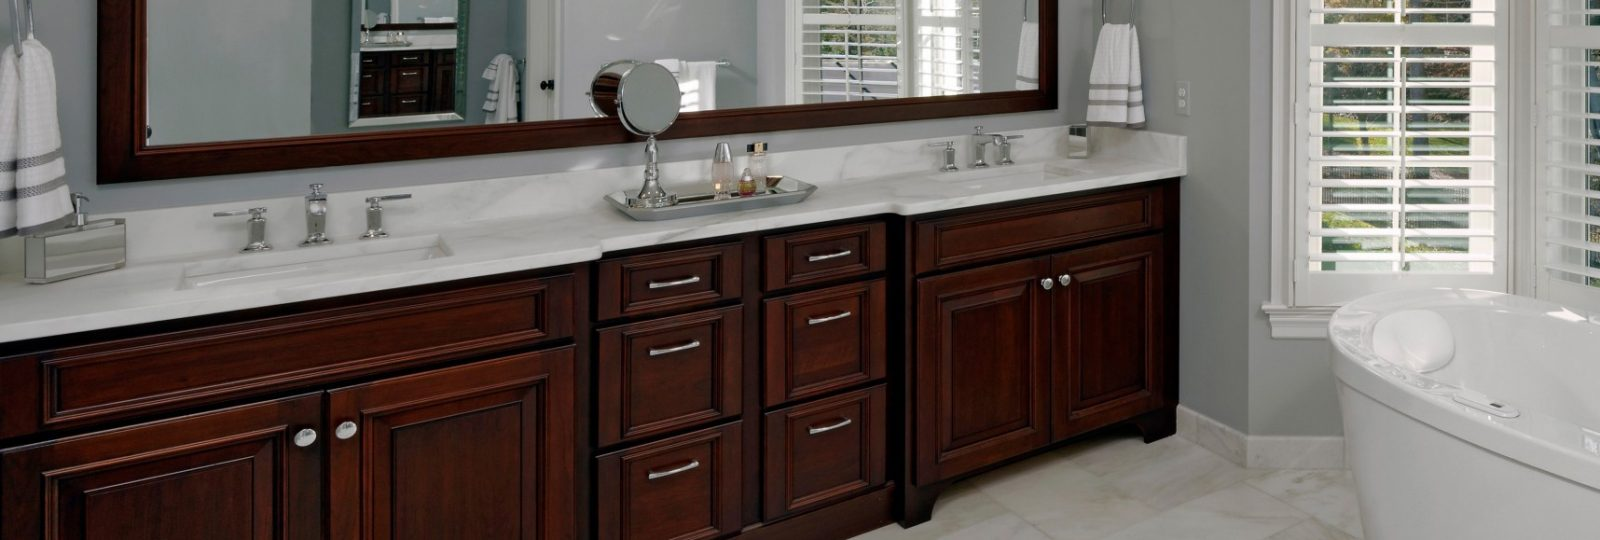 bathroom vanities for sale kalona iowa